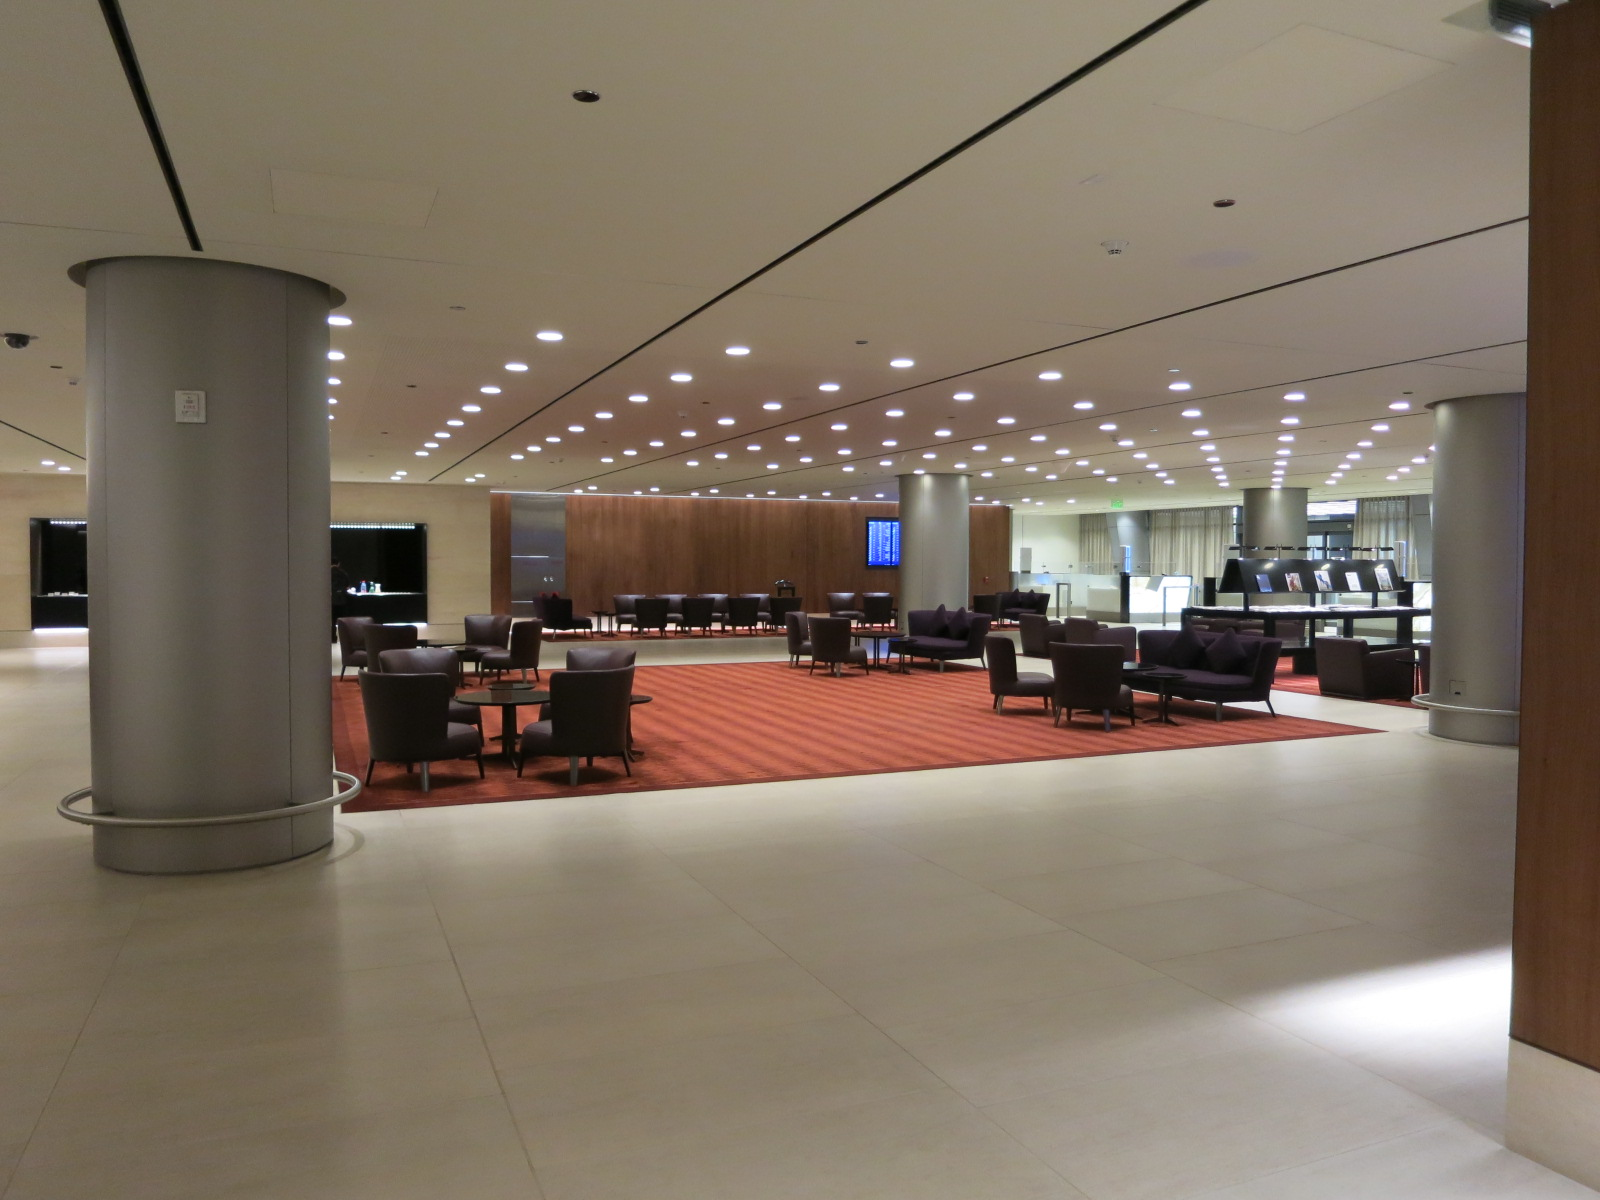 Qatar Airways A380 first class Doha immigration lounge